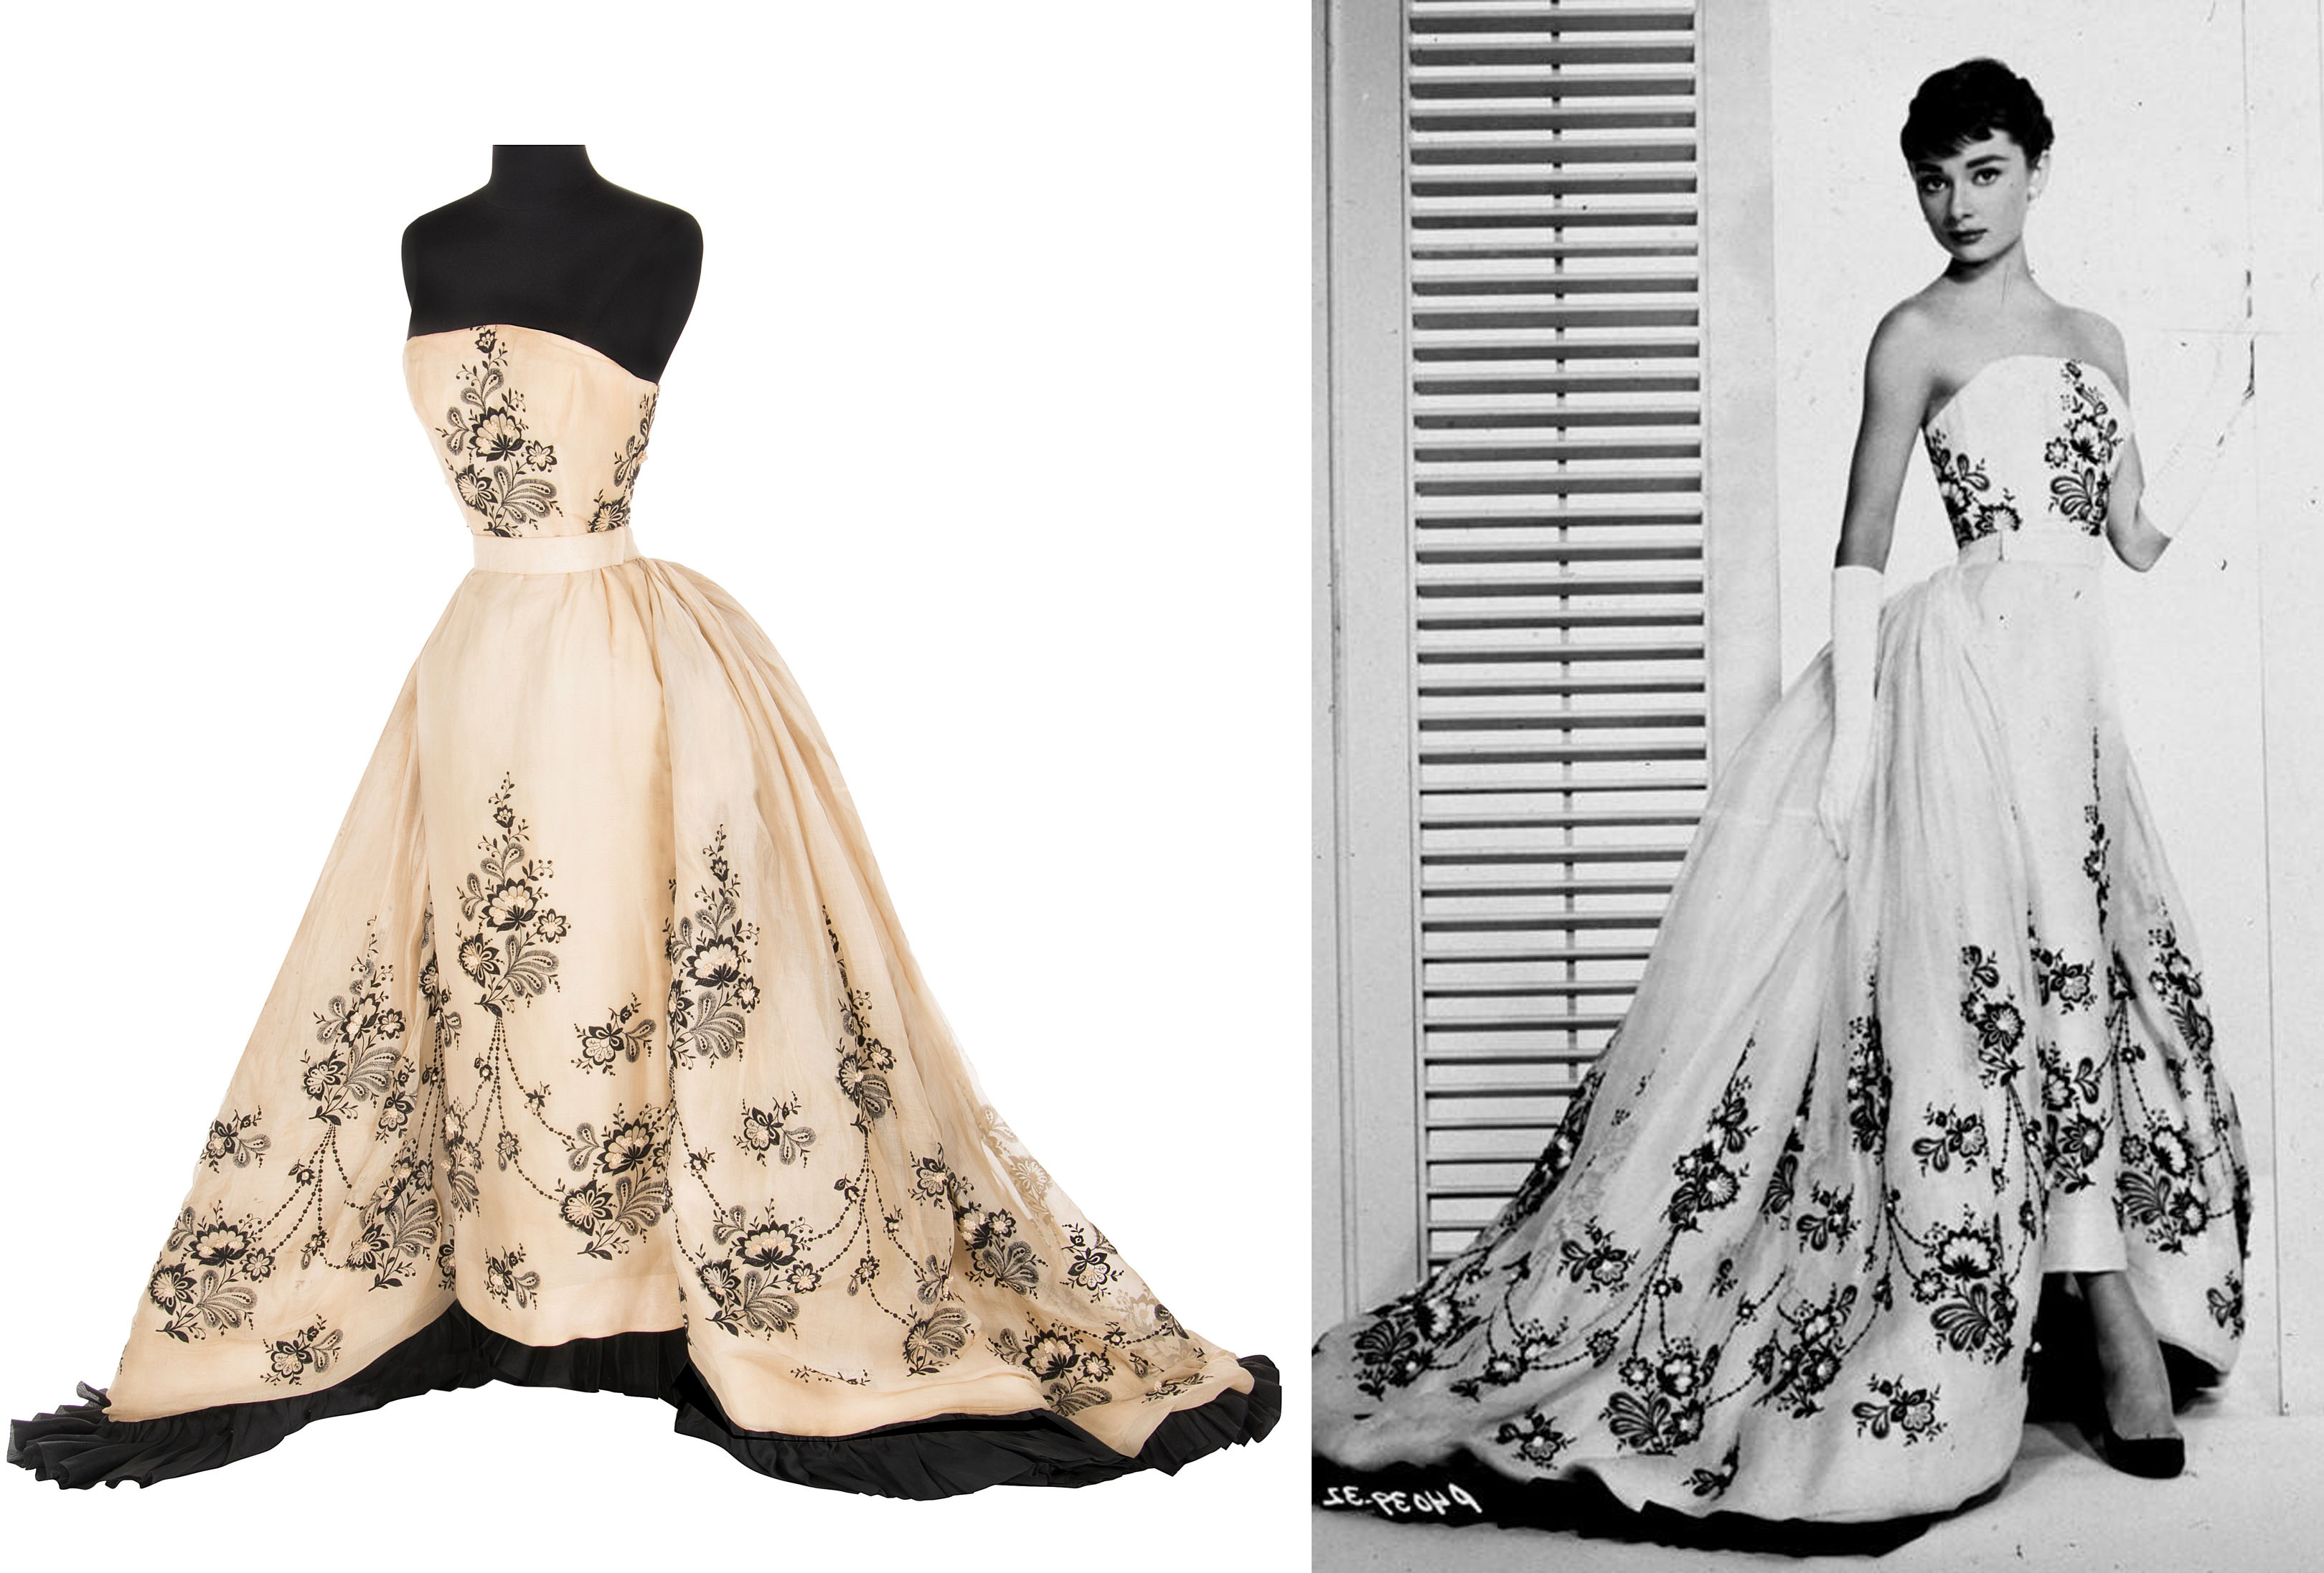 The Dresses from Audrey Hepburn to Auction